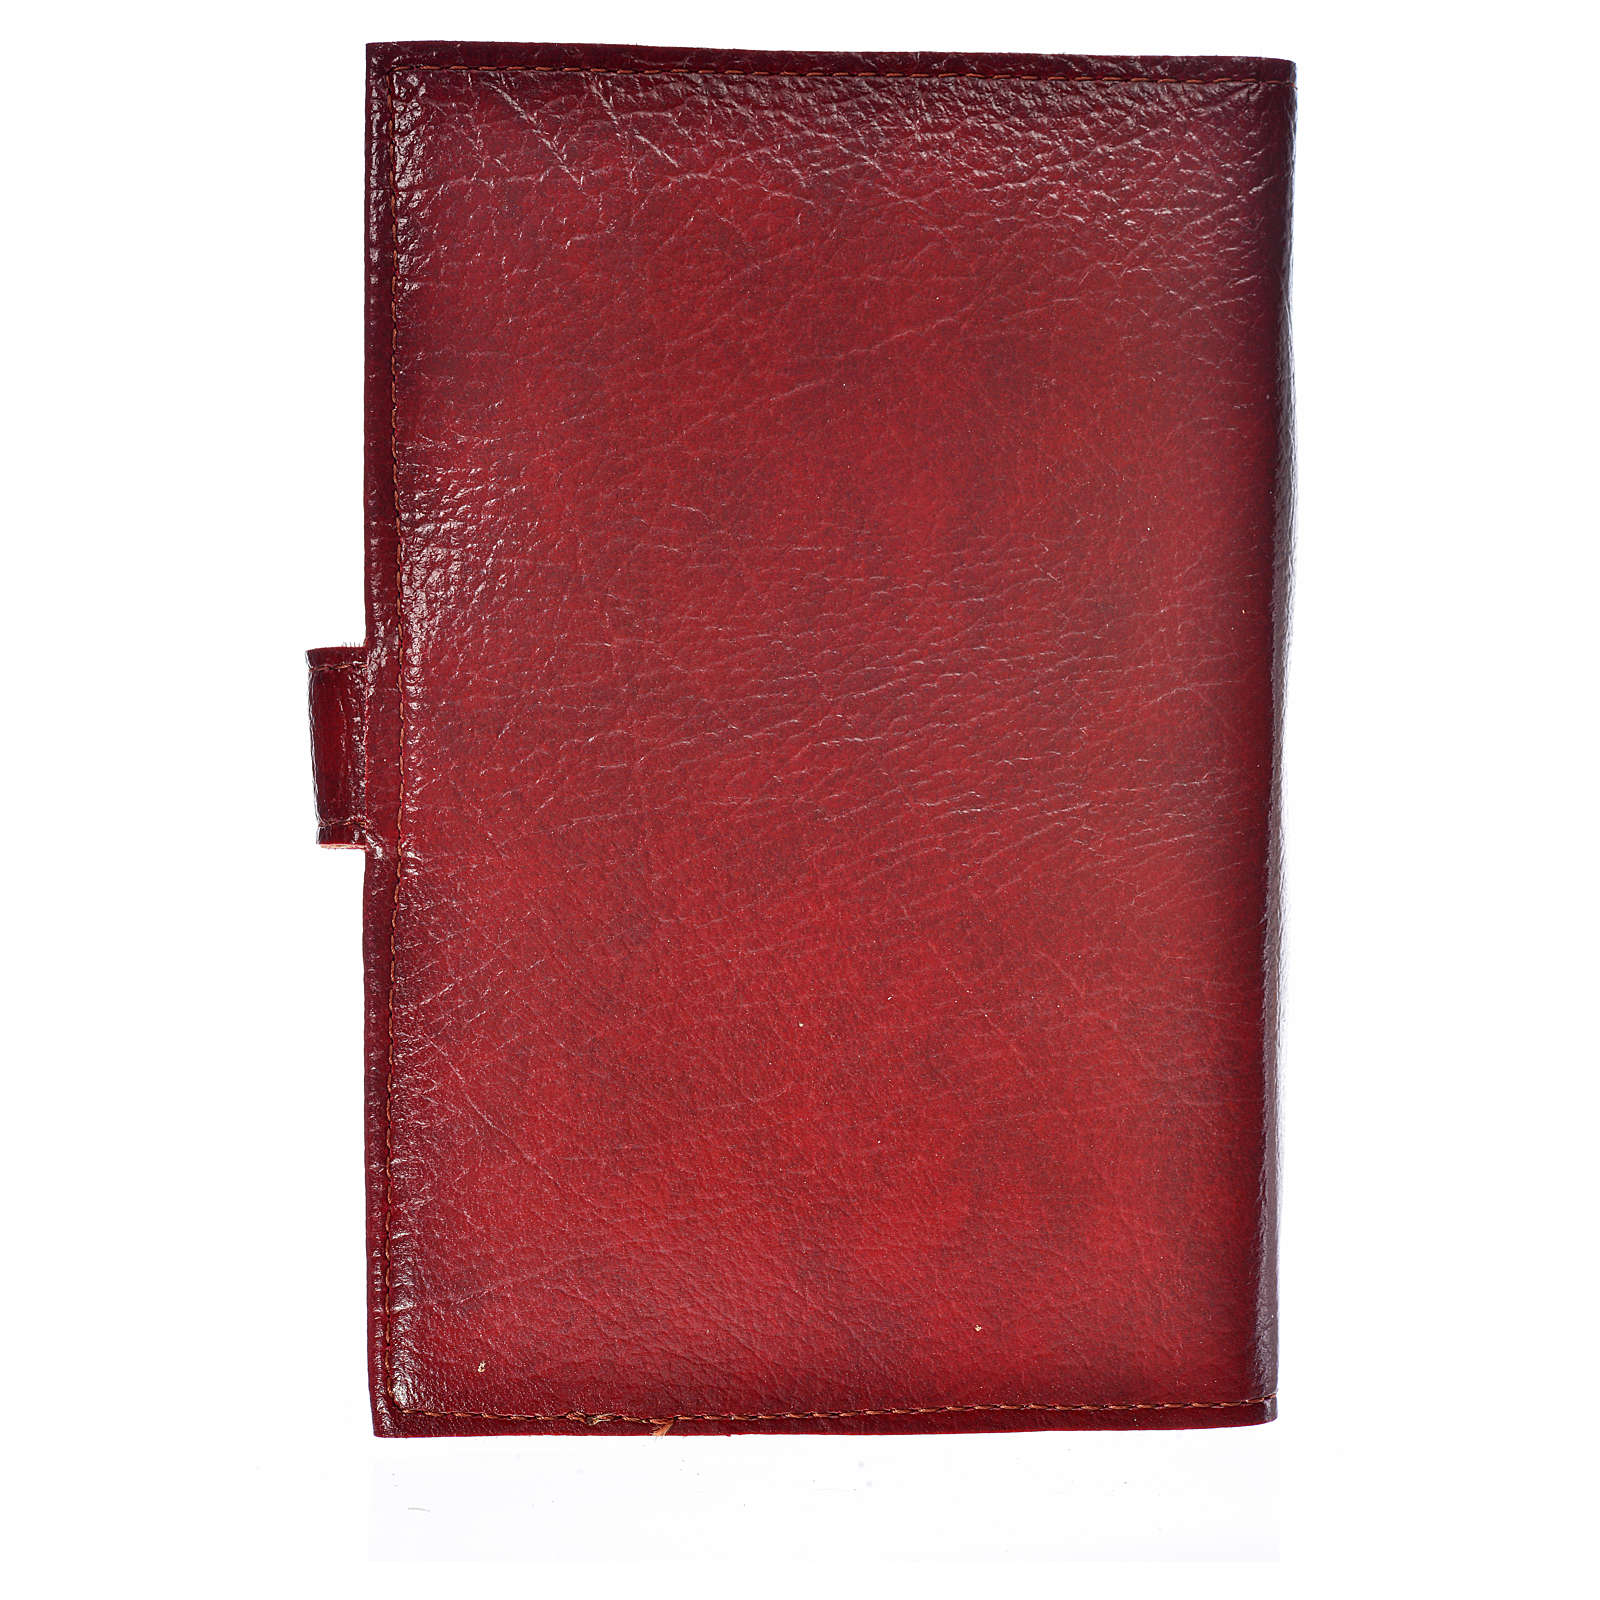 Cover for the Divine Office burgundy bonded leather Our Lady of the Tenderness 4